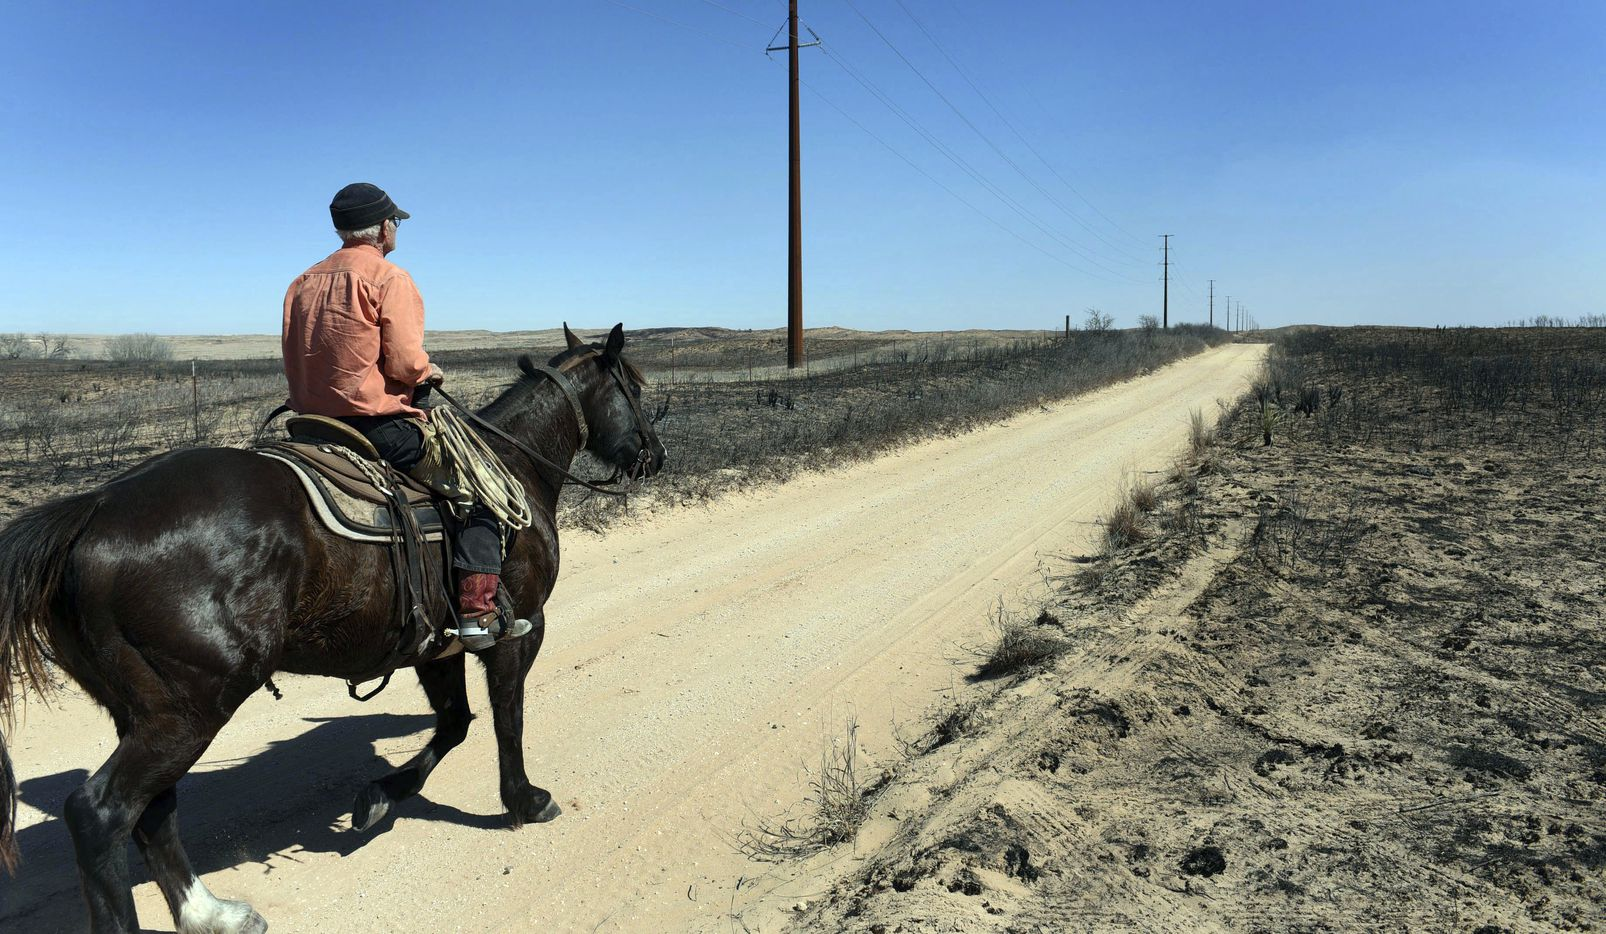 David Crockett said his grandson and friends got caught in a wind shift that blew the fire back on them, trapping them while herding cattle in a sandy dunes area of the ranch. (Michael Schumacher/Amarillo Globe-News)